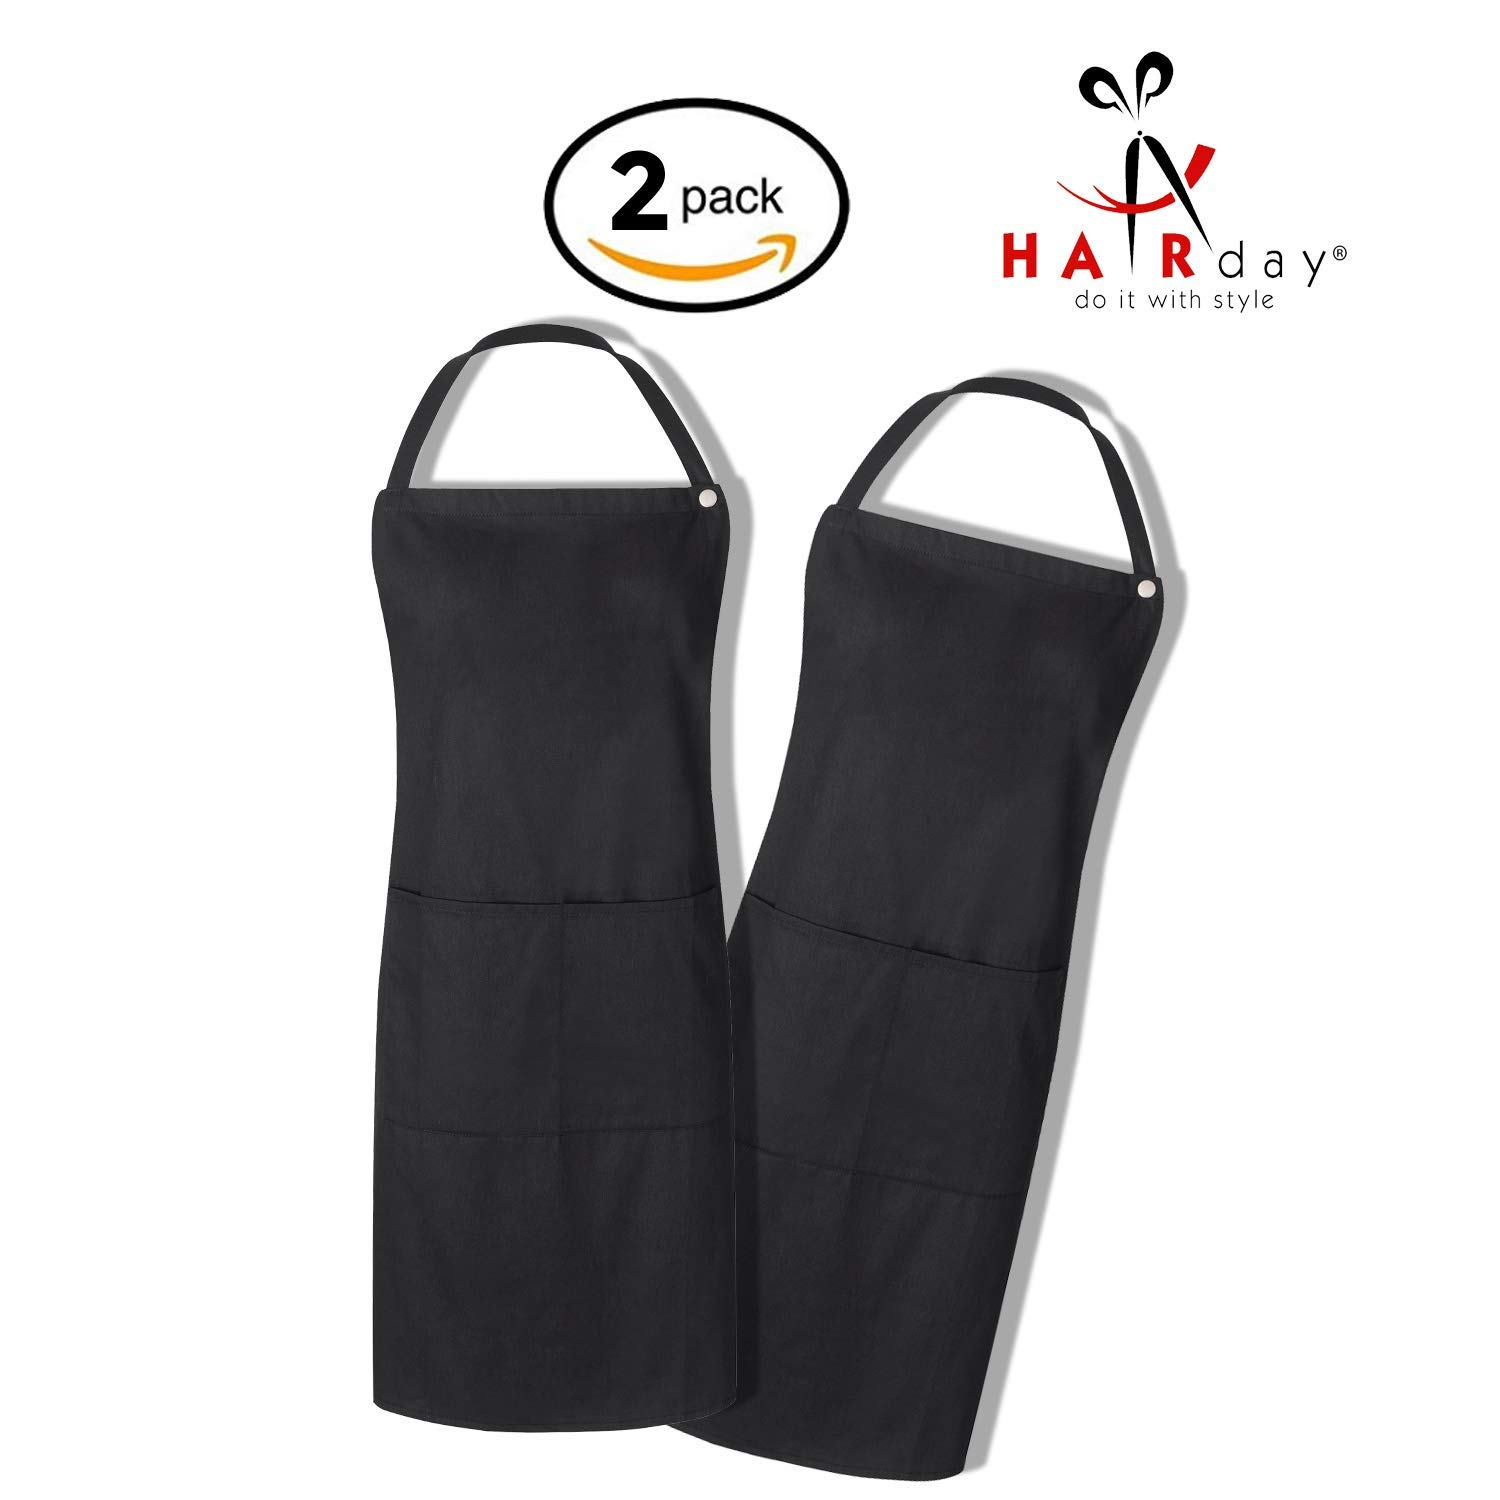 Black Bib Apron (2 Pack) With Pockets and Snap Closure – 100% Cotton Reusable and Washable Smock for Hairstylists, Barbers, Salons, Kitchens and More, Adjustable Ties, Men's and Women's - HairDay